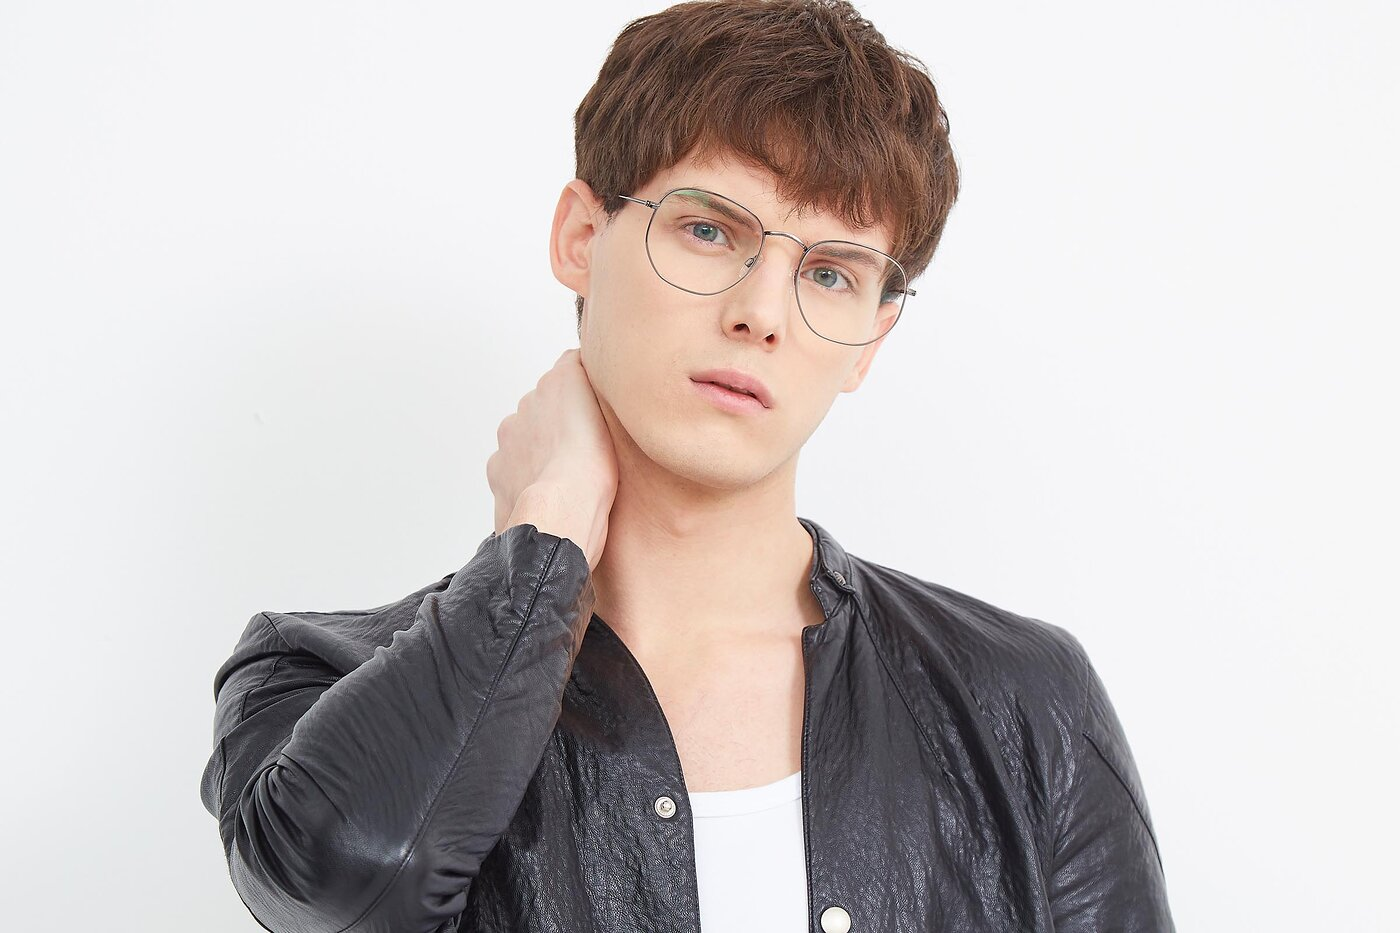 Grey Oversized Hipster Geometric Eyeglasses